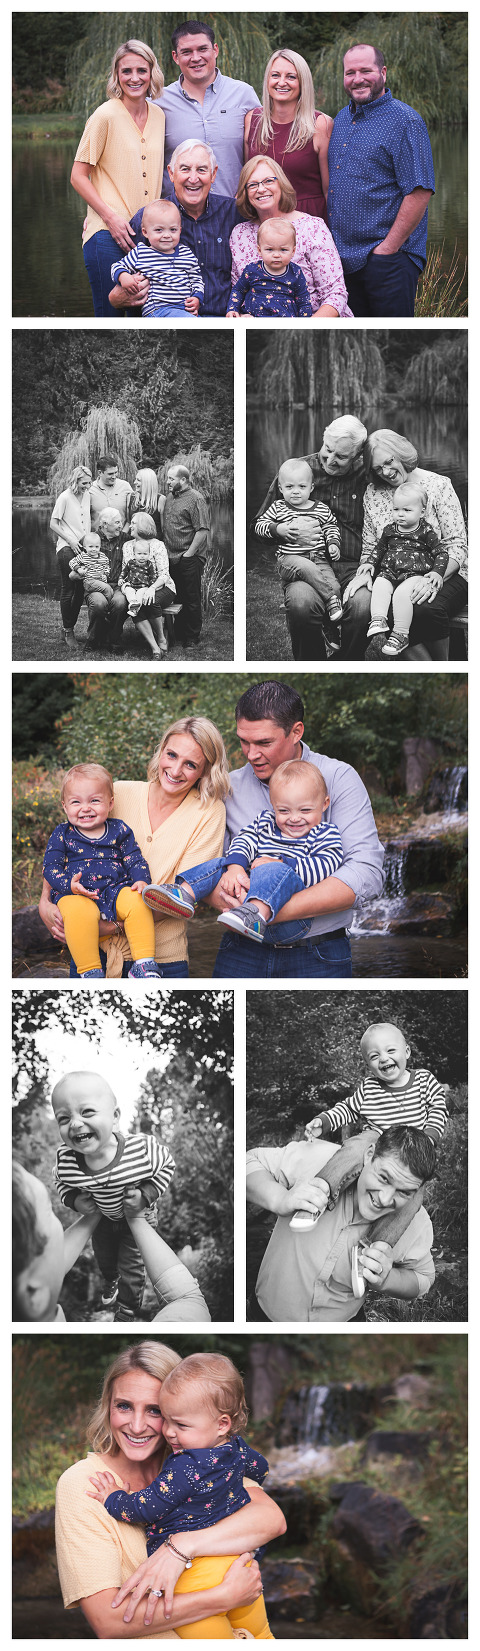 Vertrees lifestyle family session by Hailey Haberman in Cle Elum WA